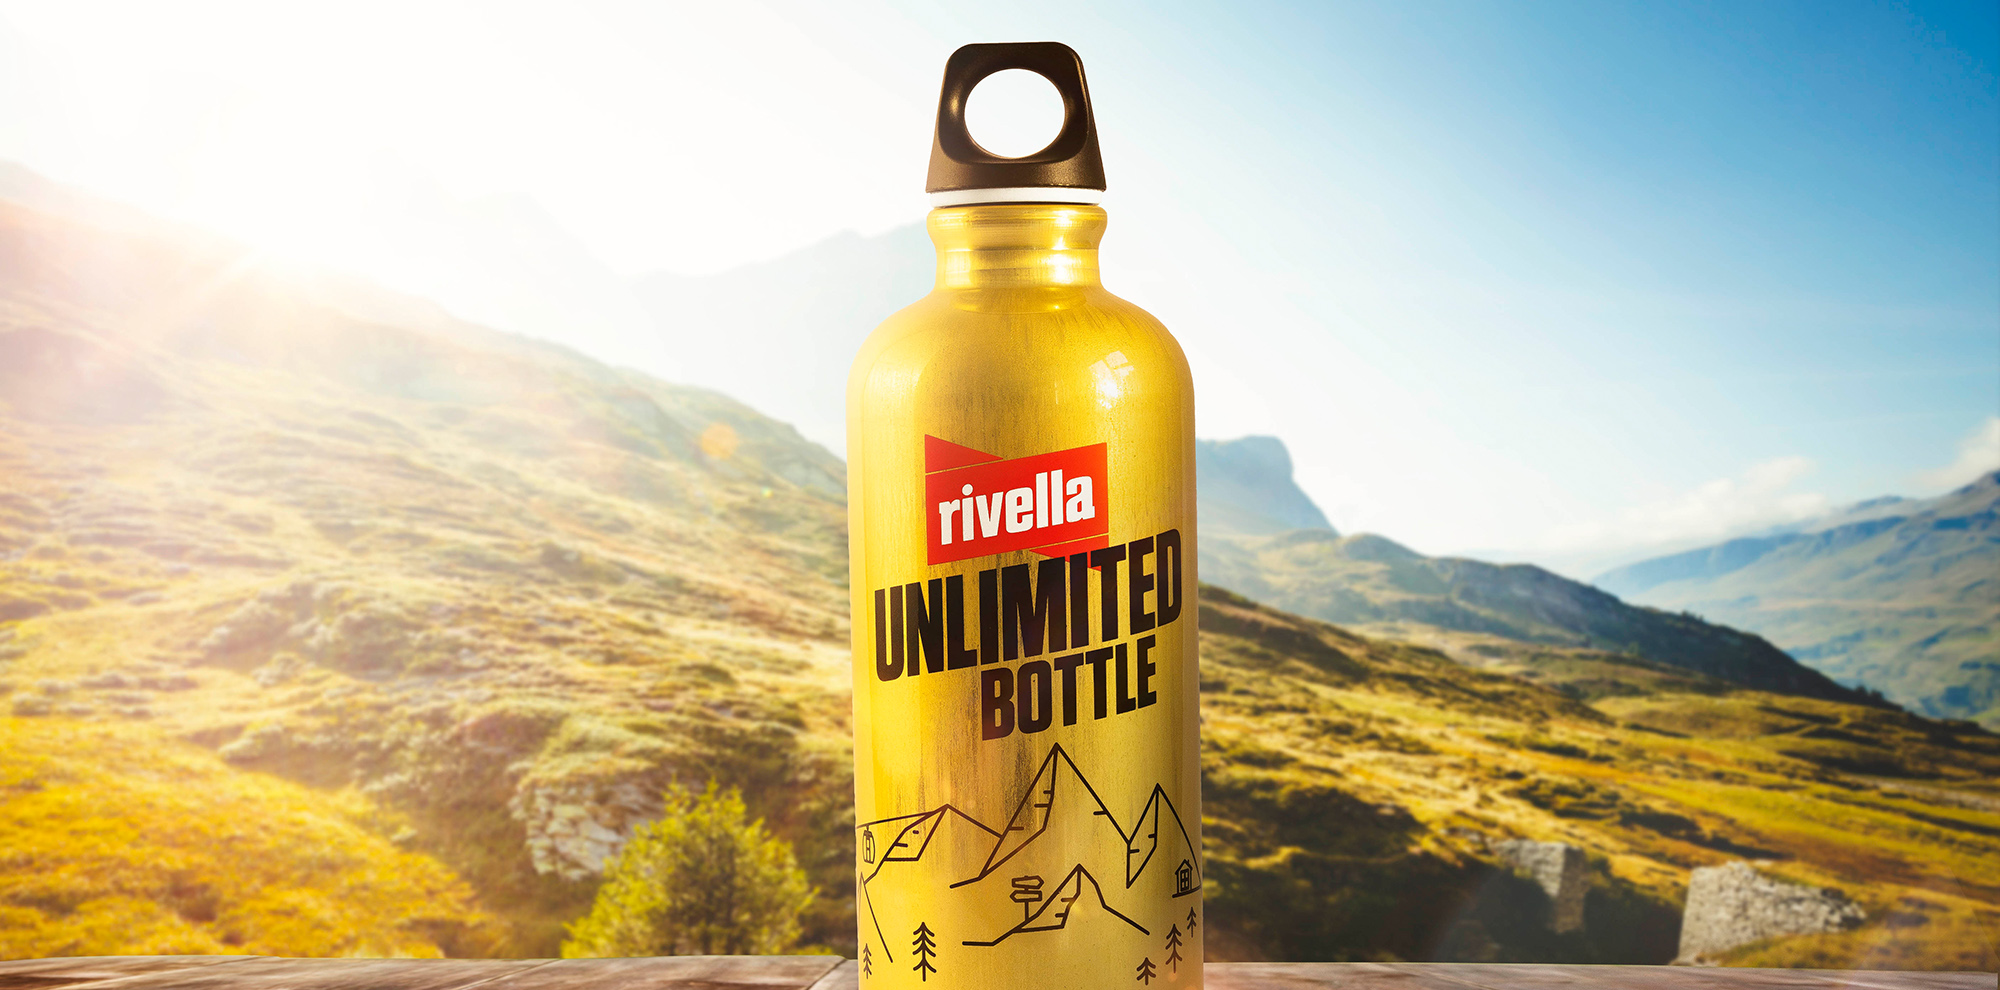 «Rivella Unlimited Bottle»